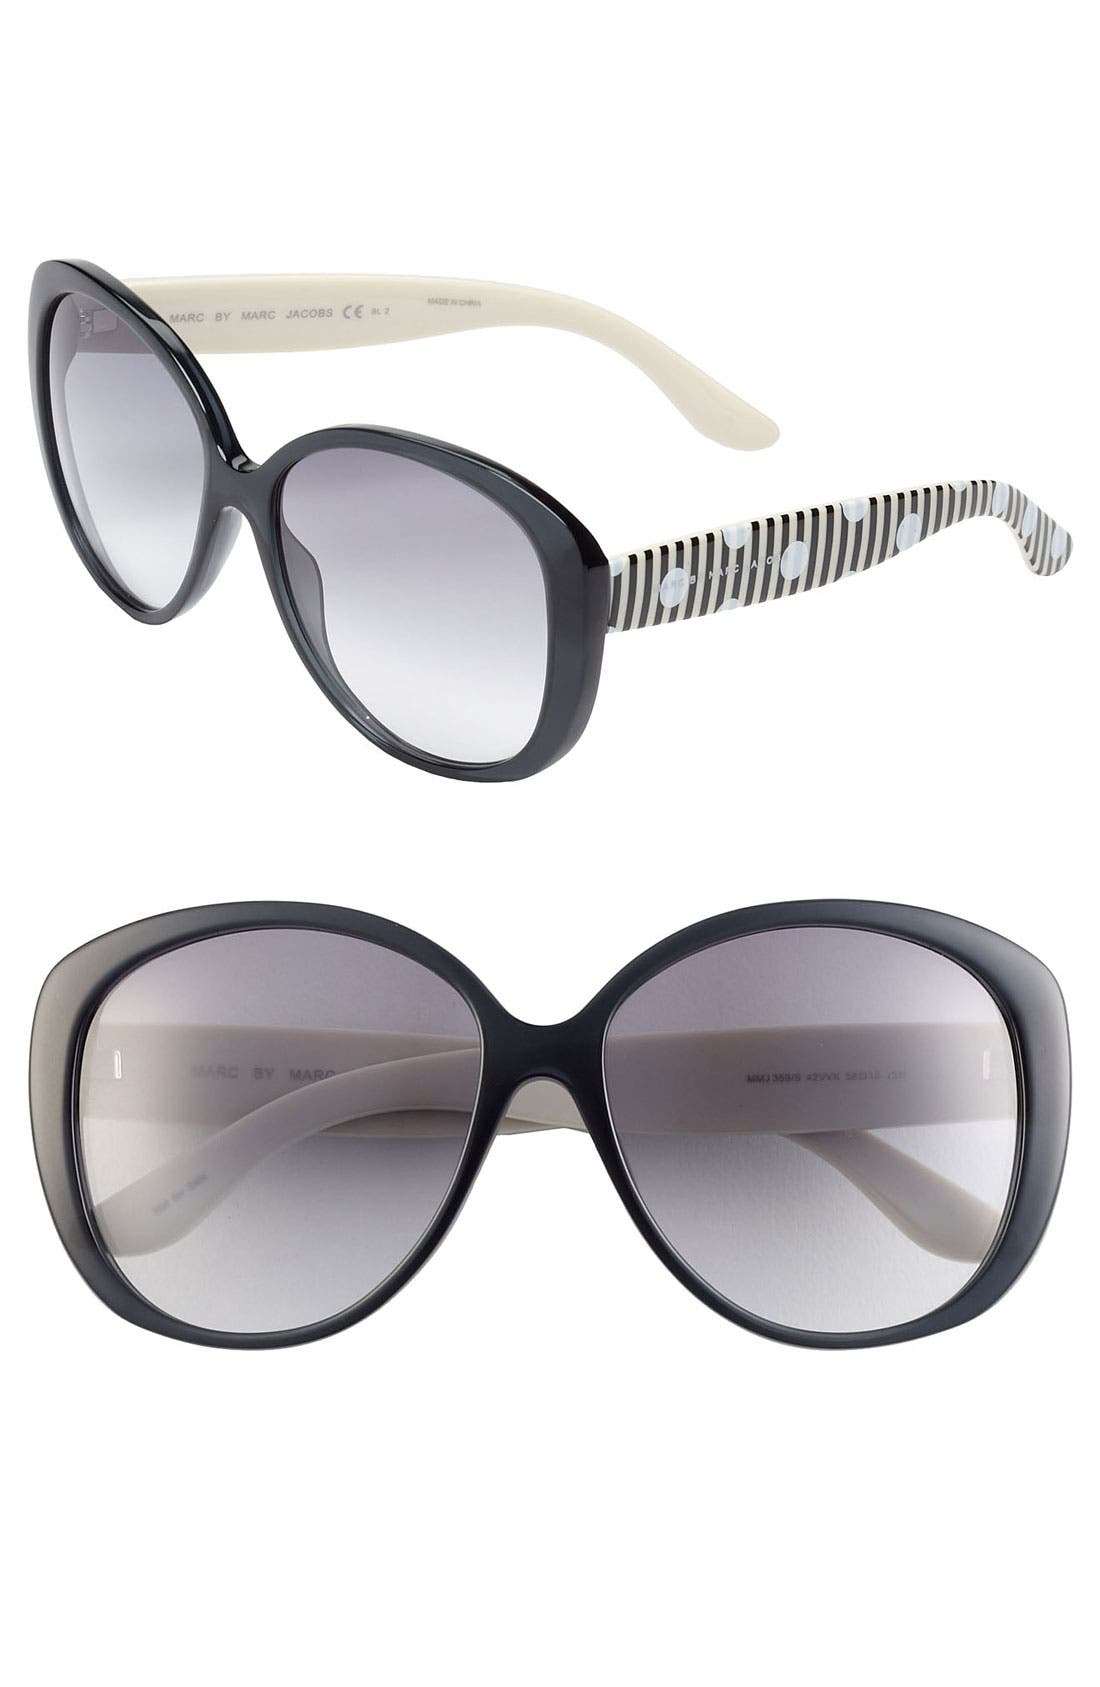 Alternate Image 1 Selected - MARC BY MARC JACOBS 58mm Oversized Retro Sunglasses